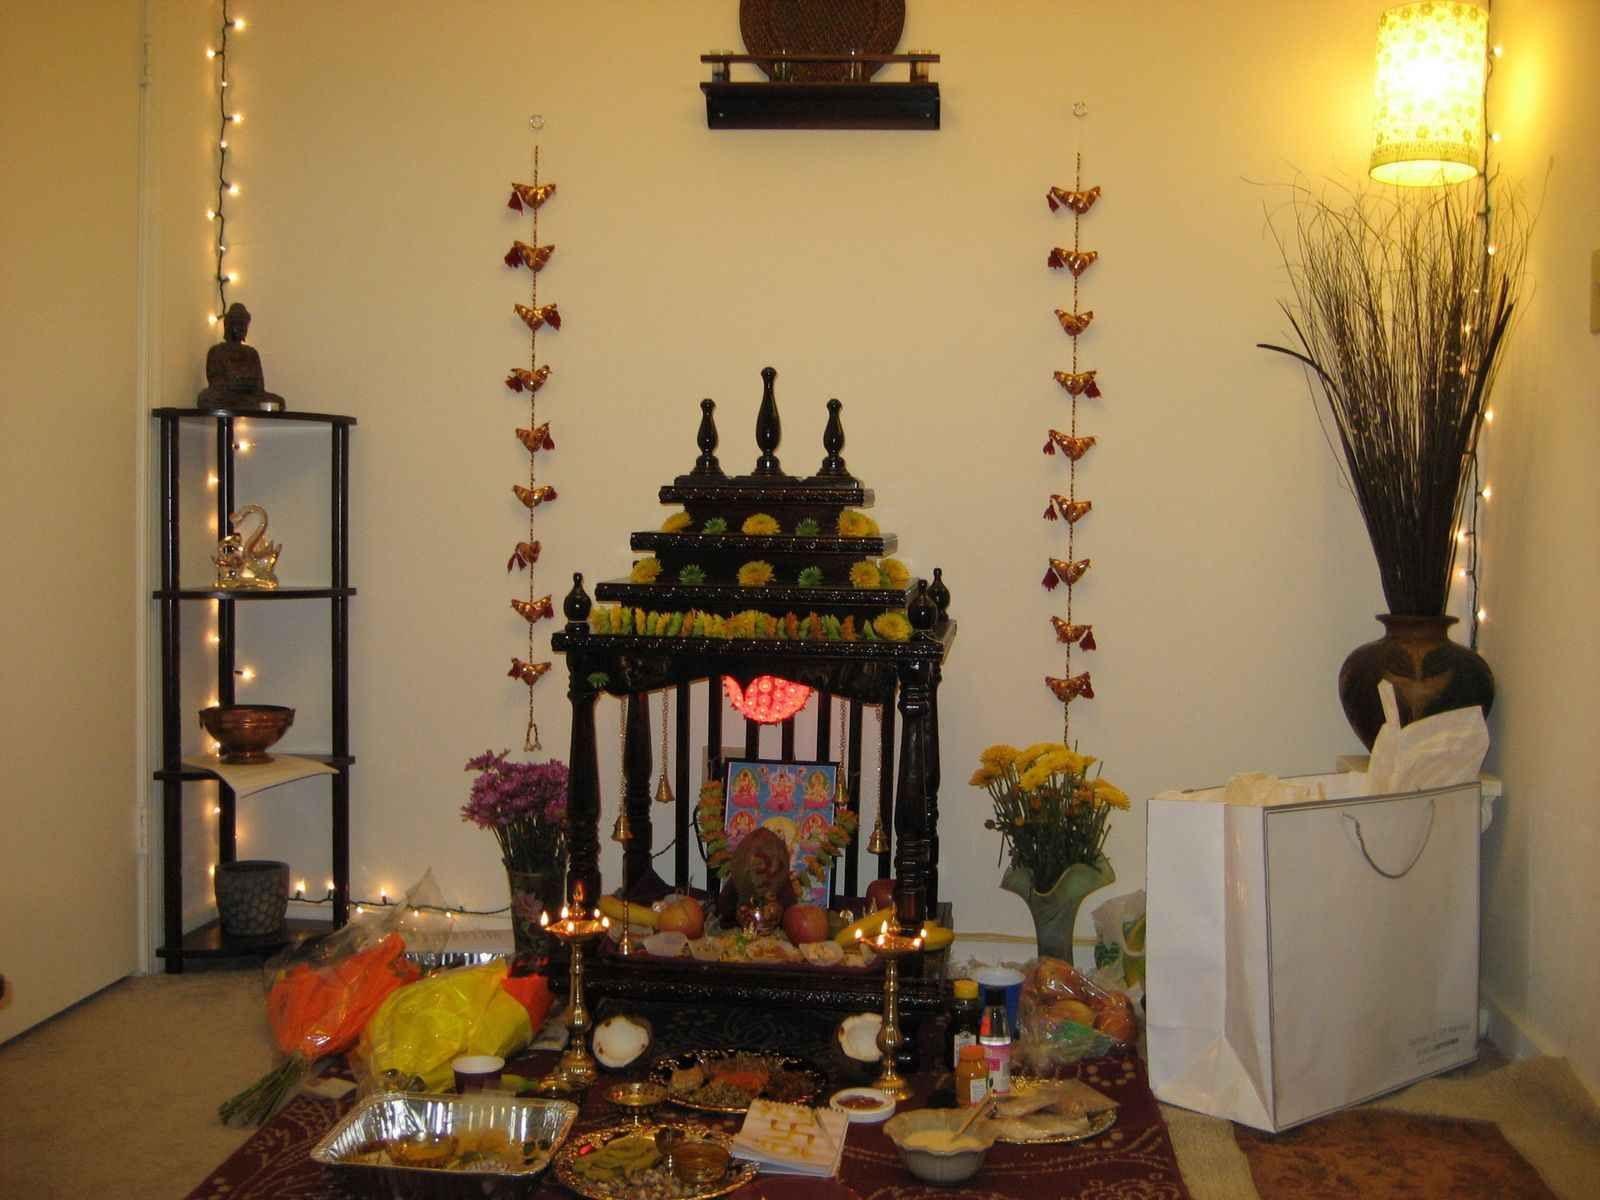 Puja room design home mandir lamps doors vastu idols for Home decorations ideas for diwali